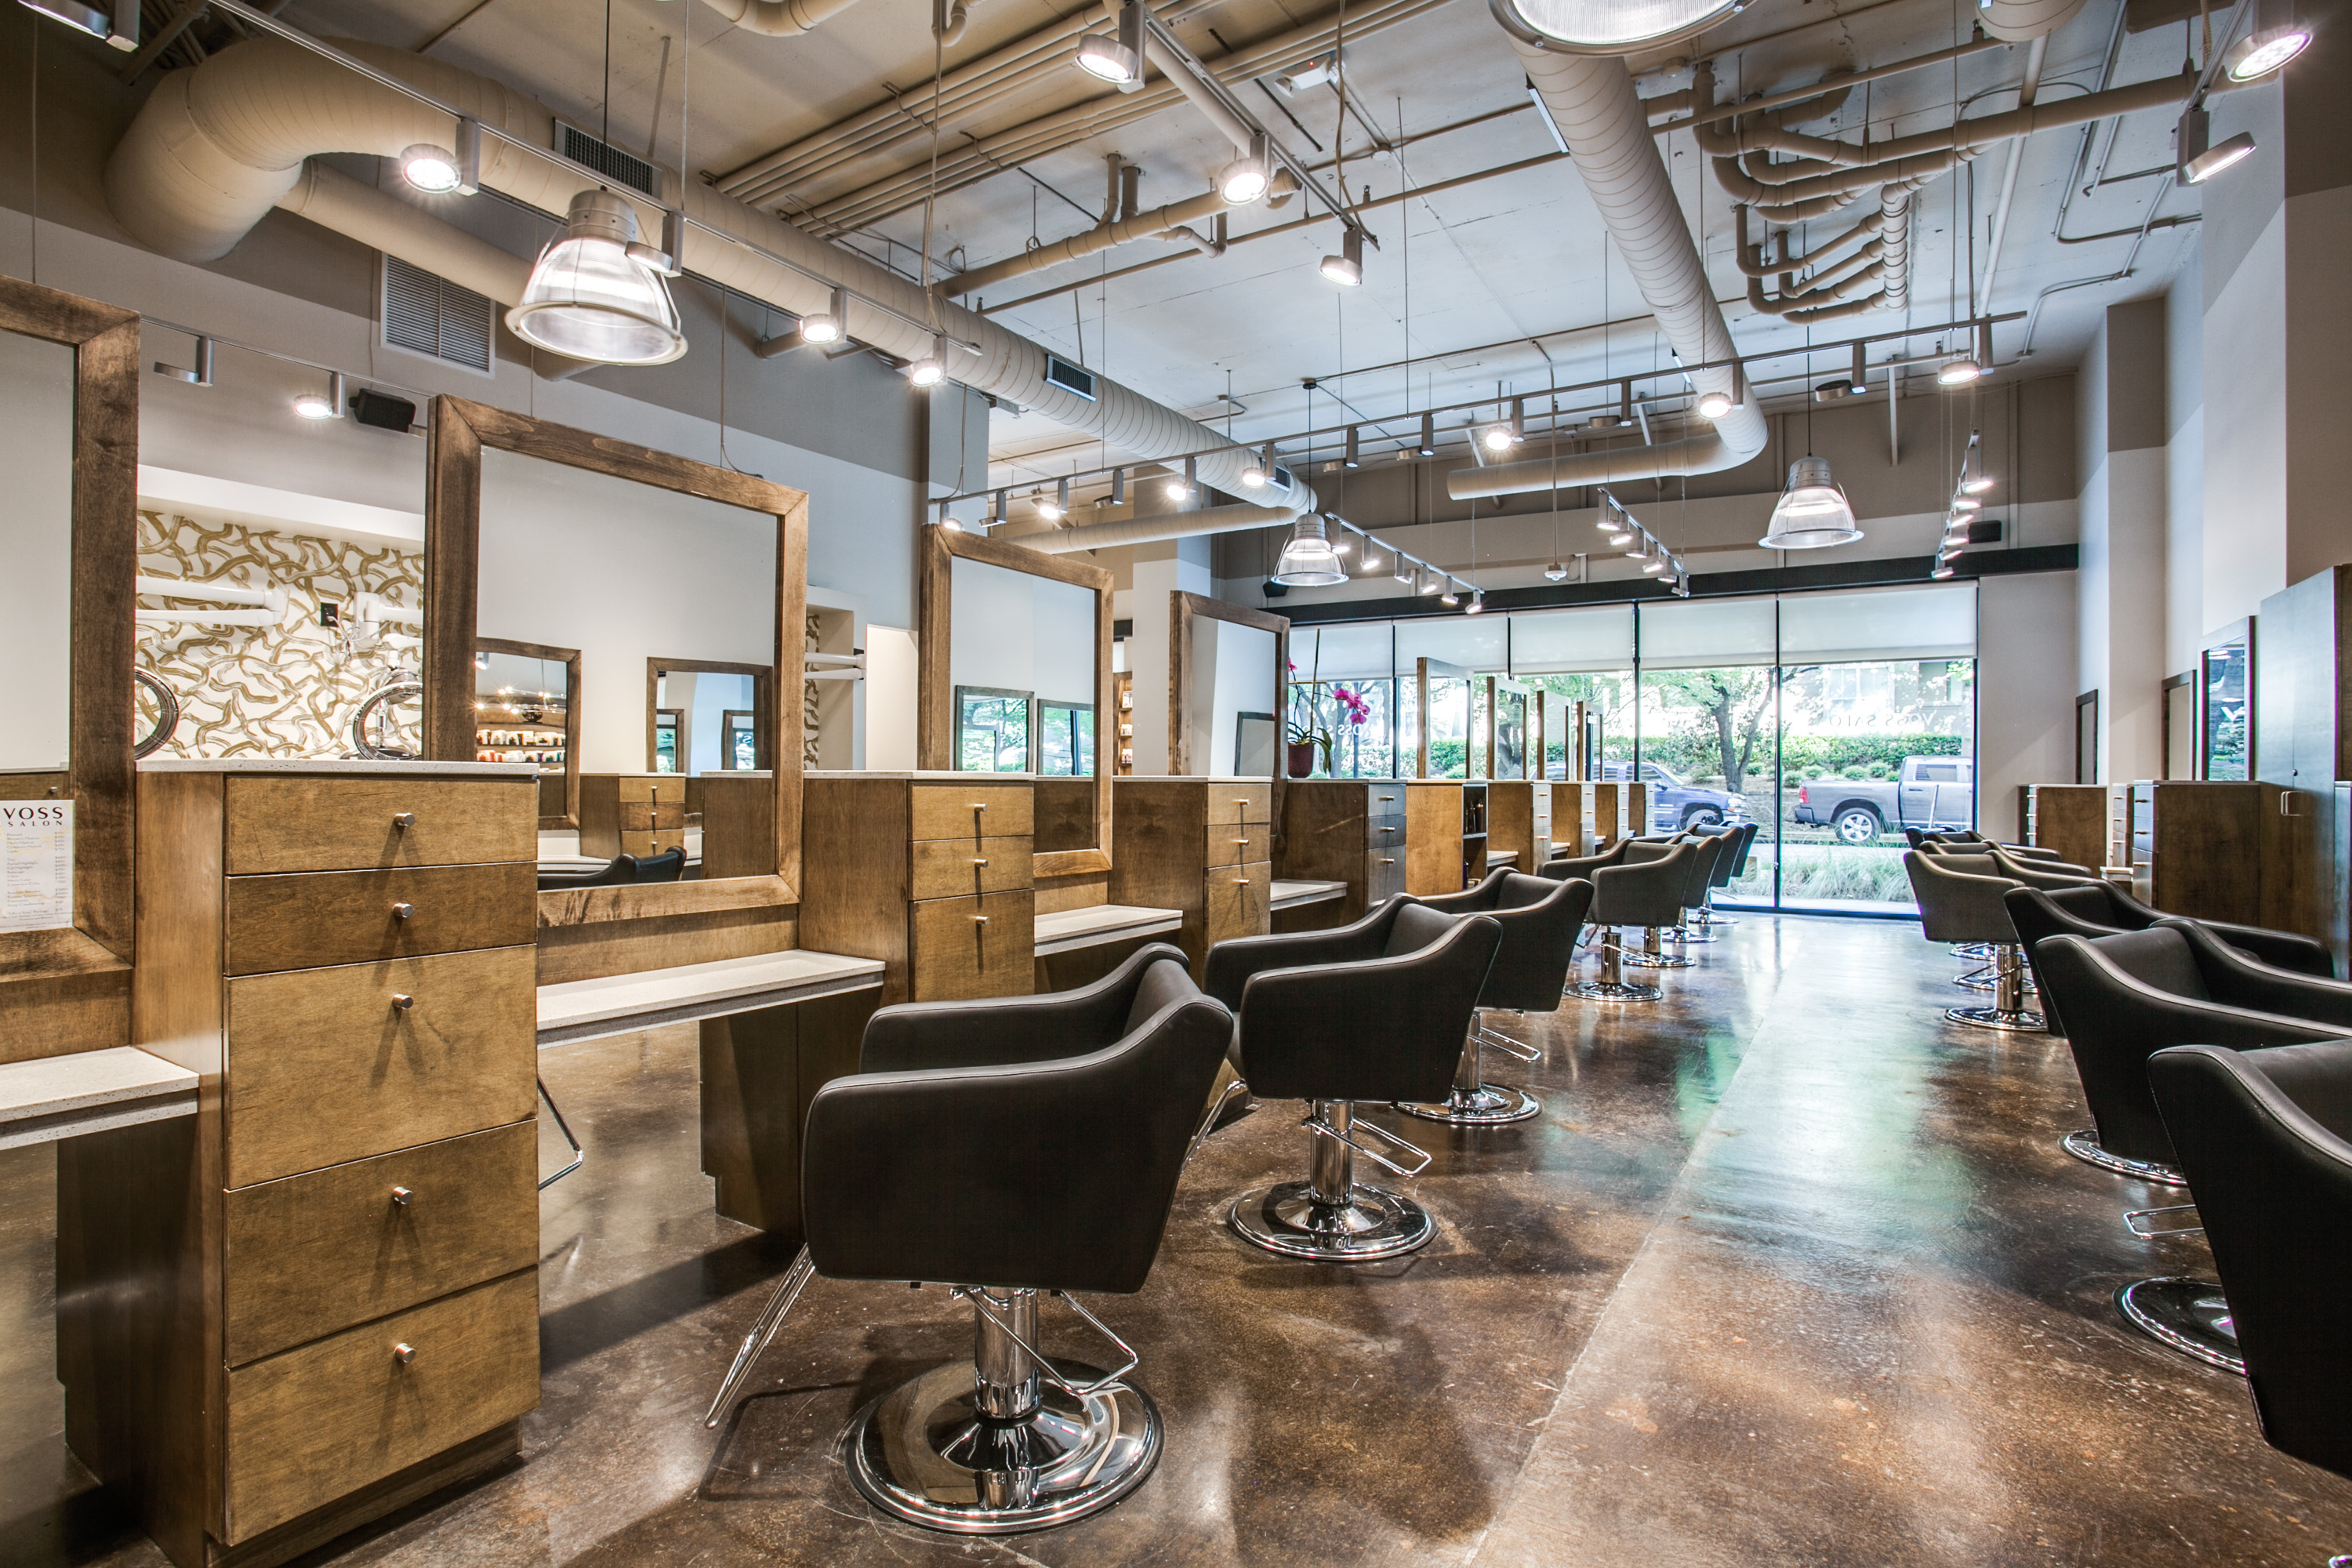 2018 Salons of the Year: Voss Salon